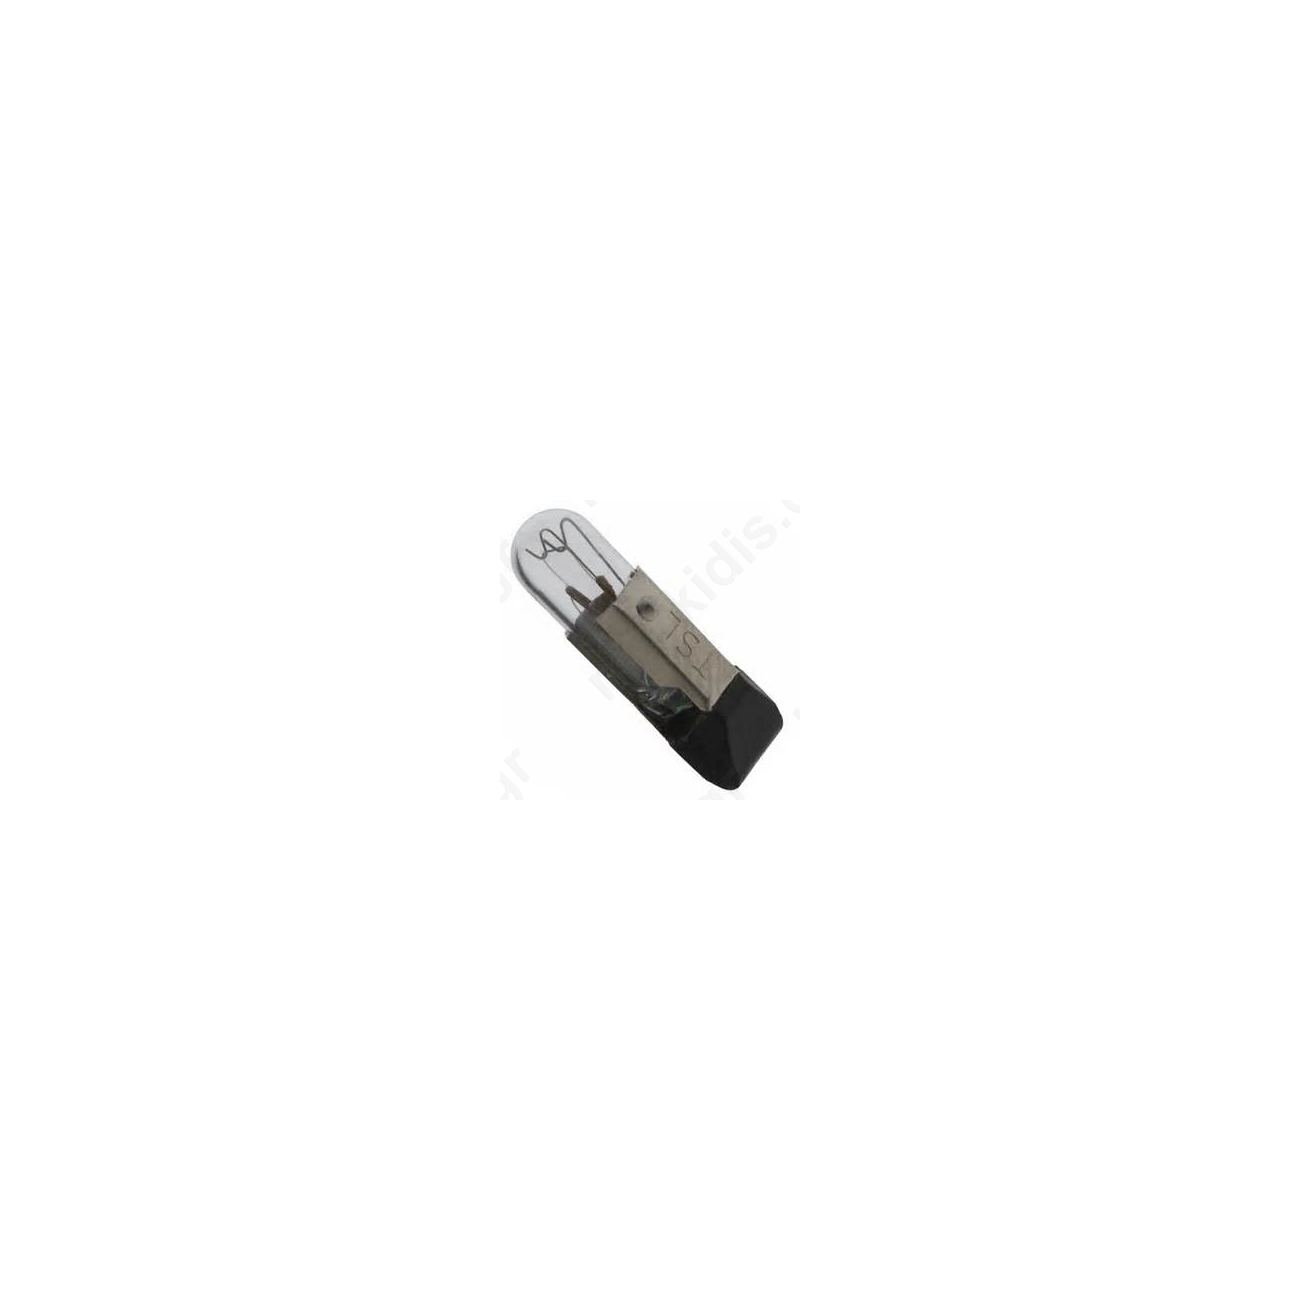 SPARE BULB FOR T16,T4 5-24V